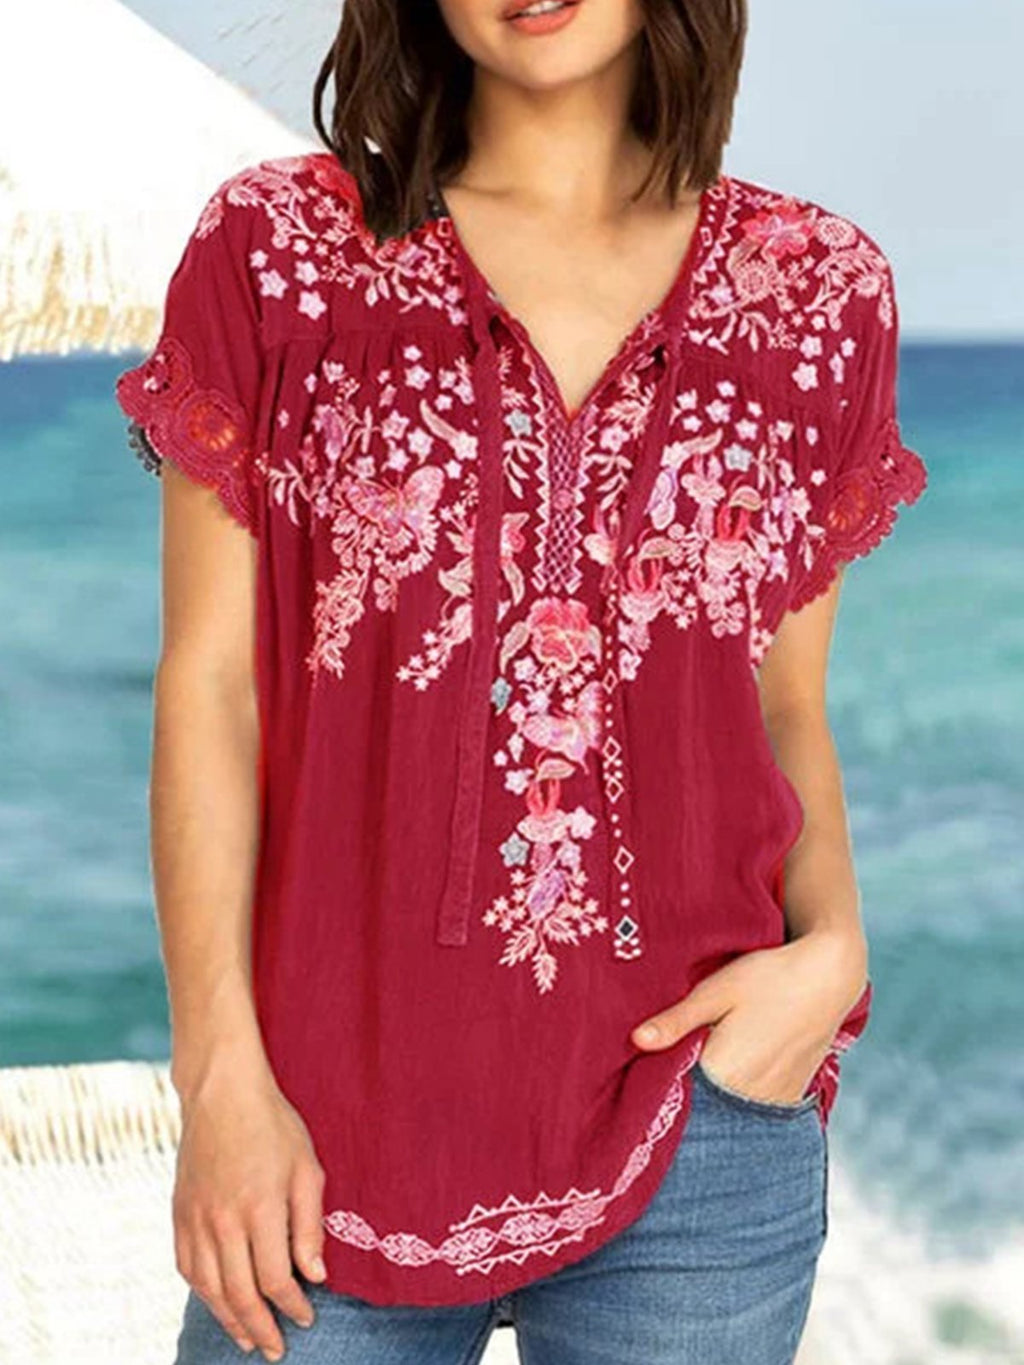 Summer Loose Floral Embroidery Lace Short-Sleeved Blouse